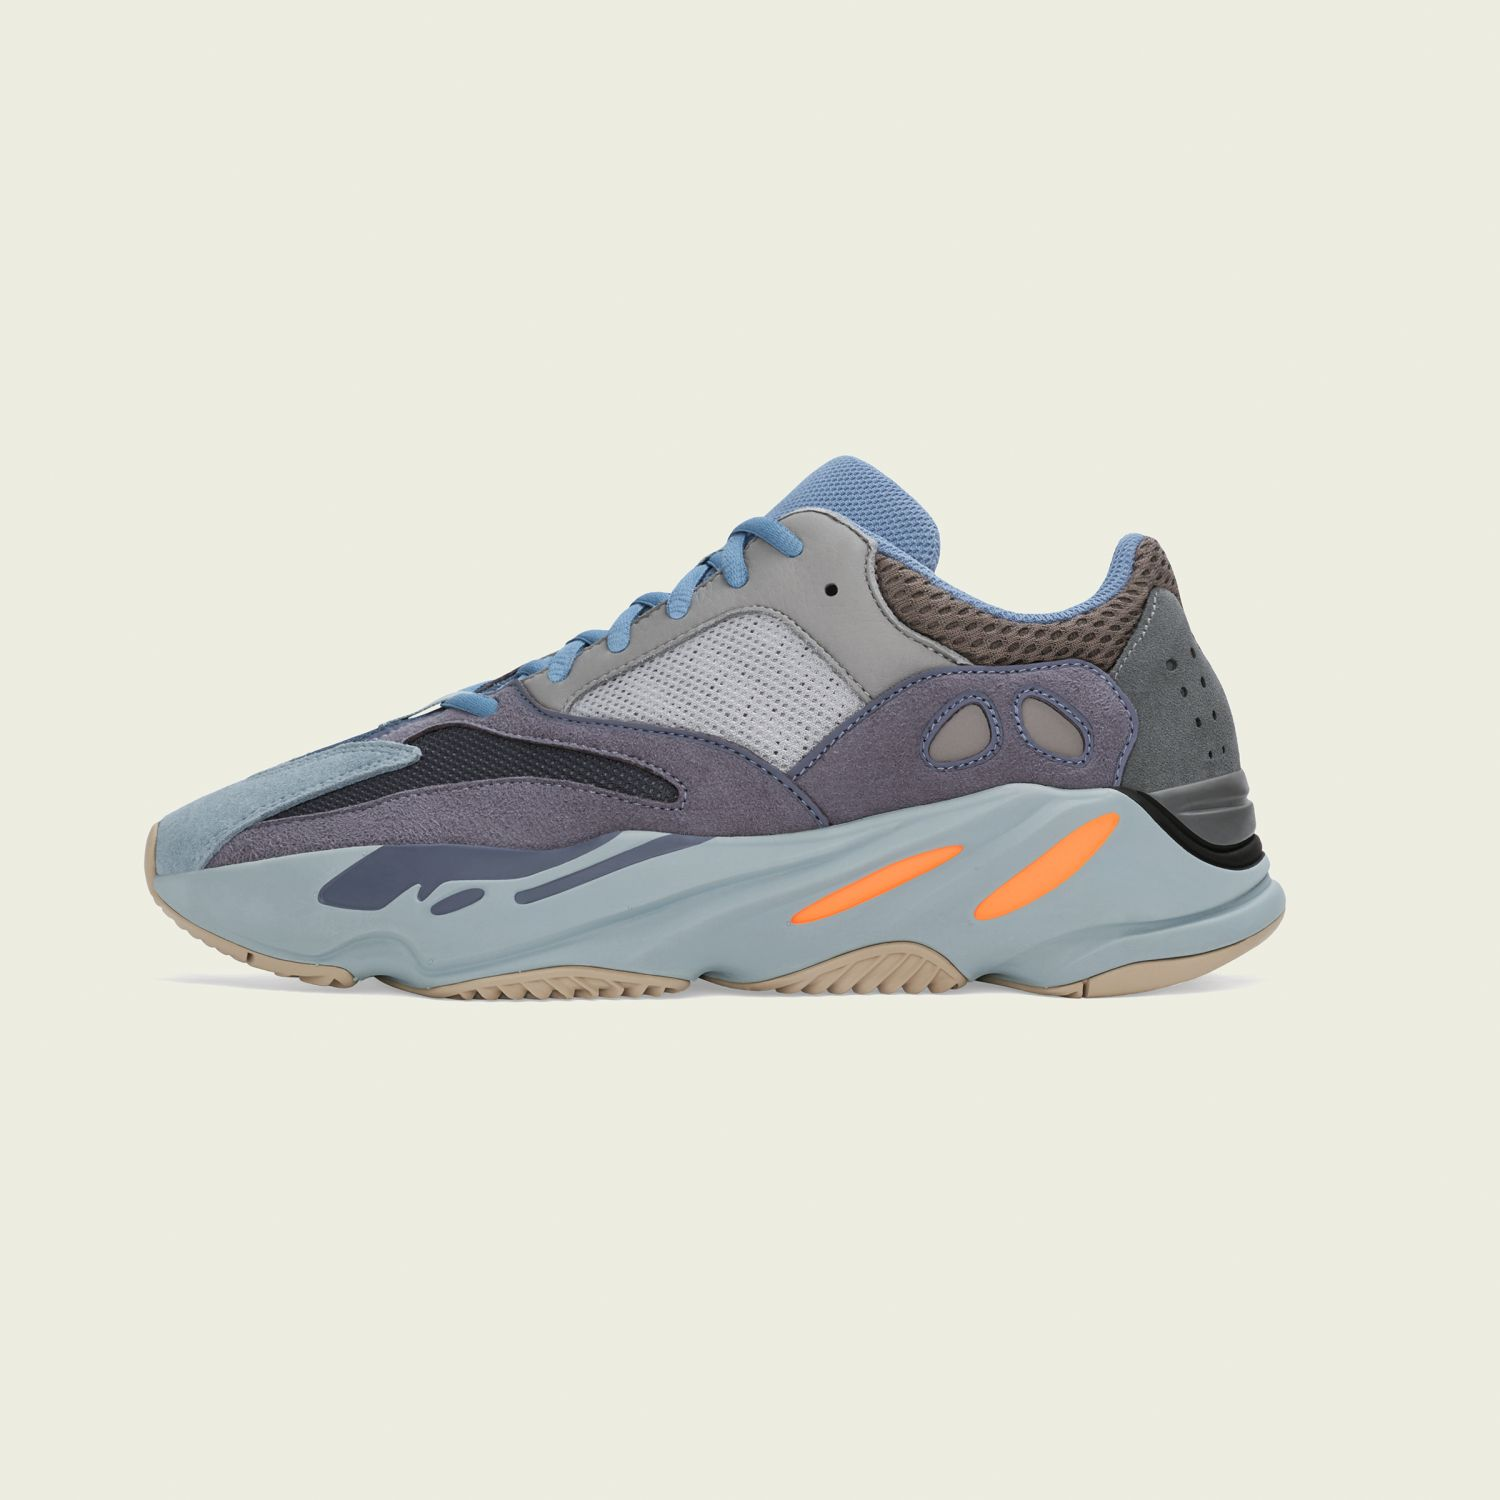 Yeezy Boost 700 Carbon Blue [2]